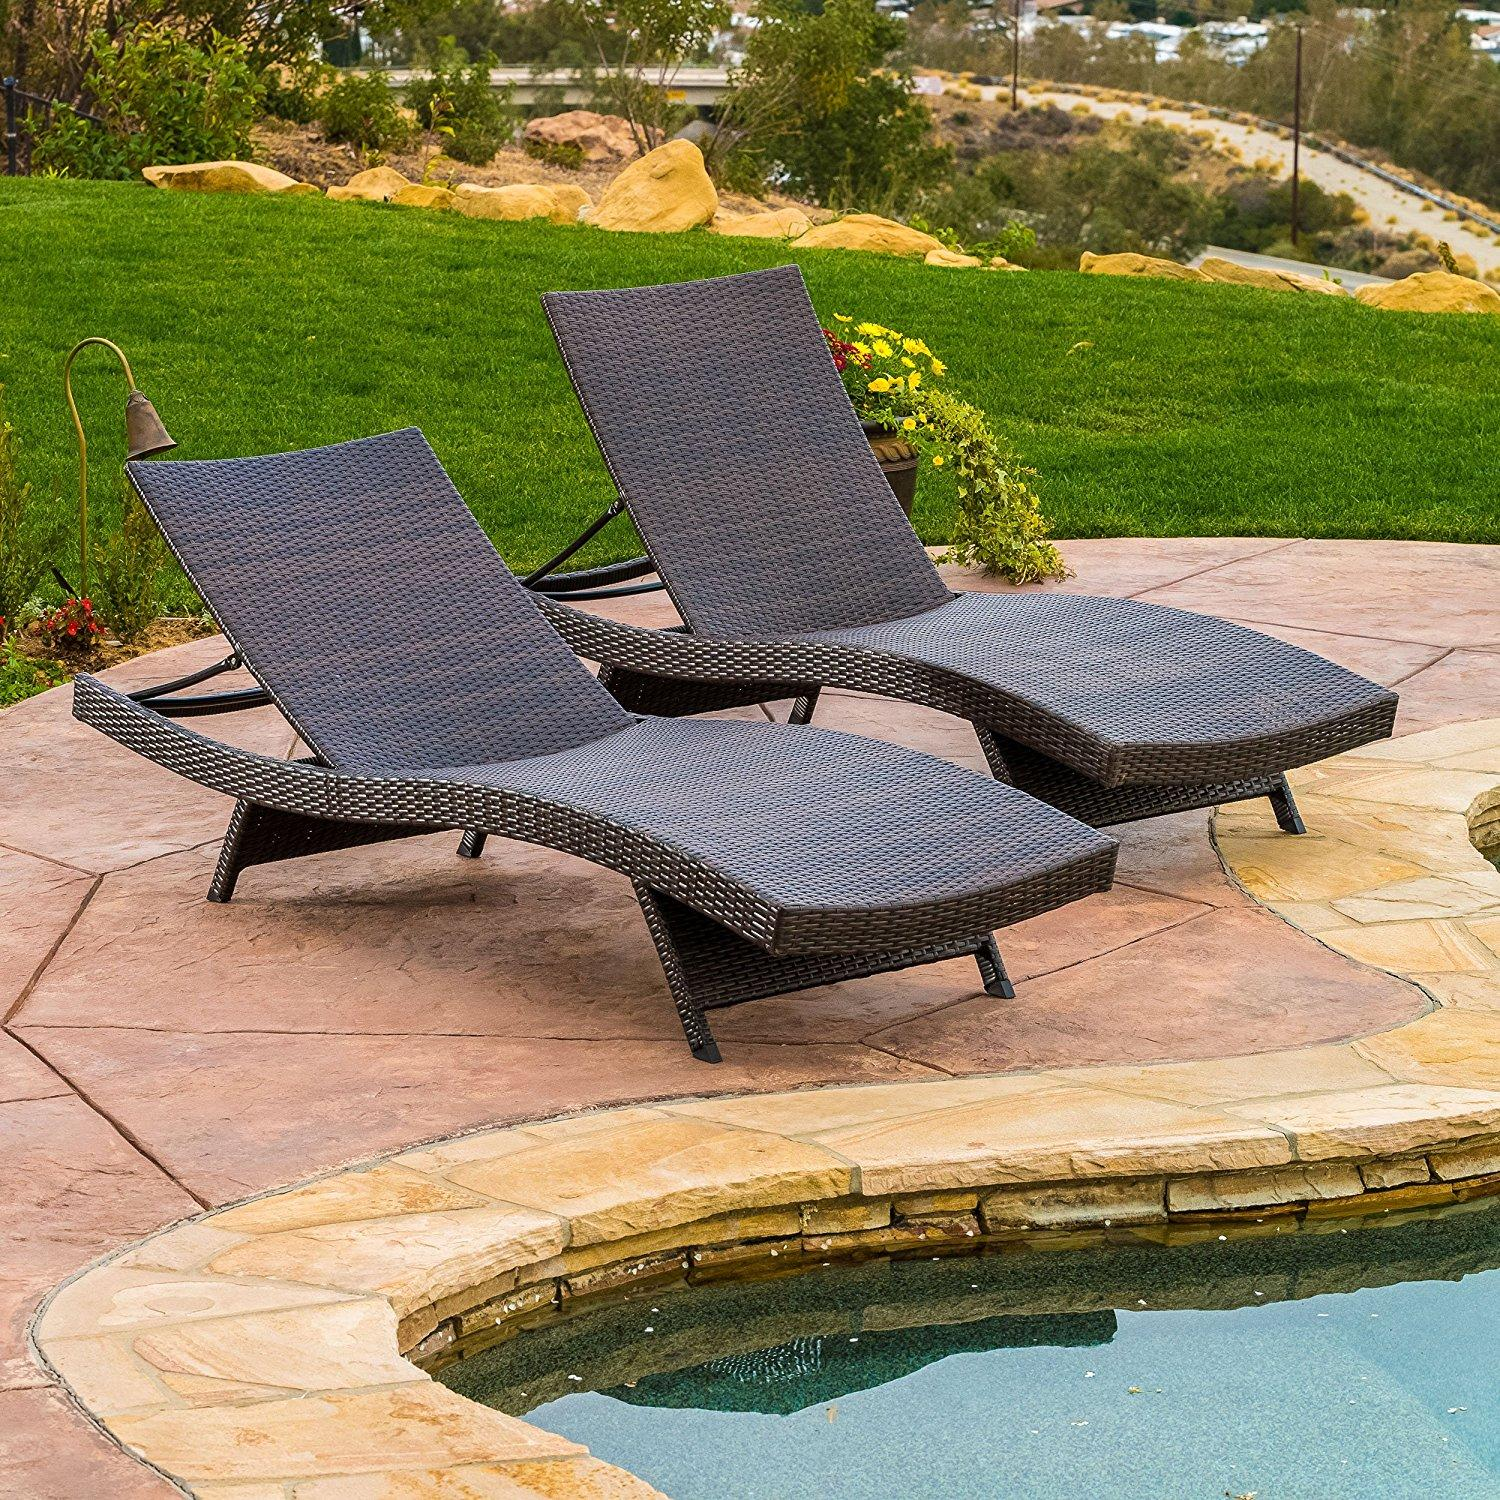 2x Christopher Knight Outdoor Adjustable Chaise Lounge Chair